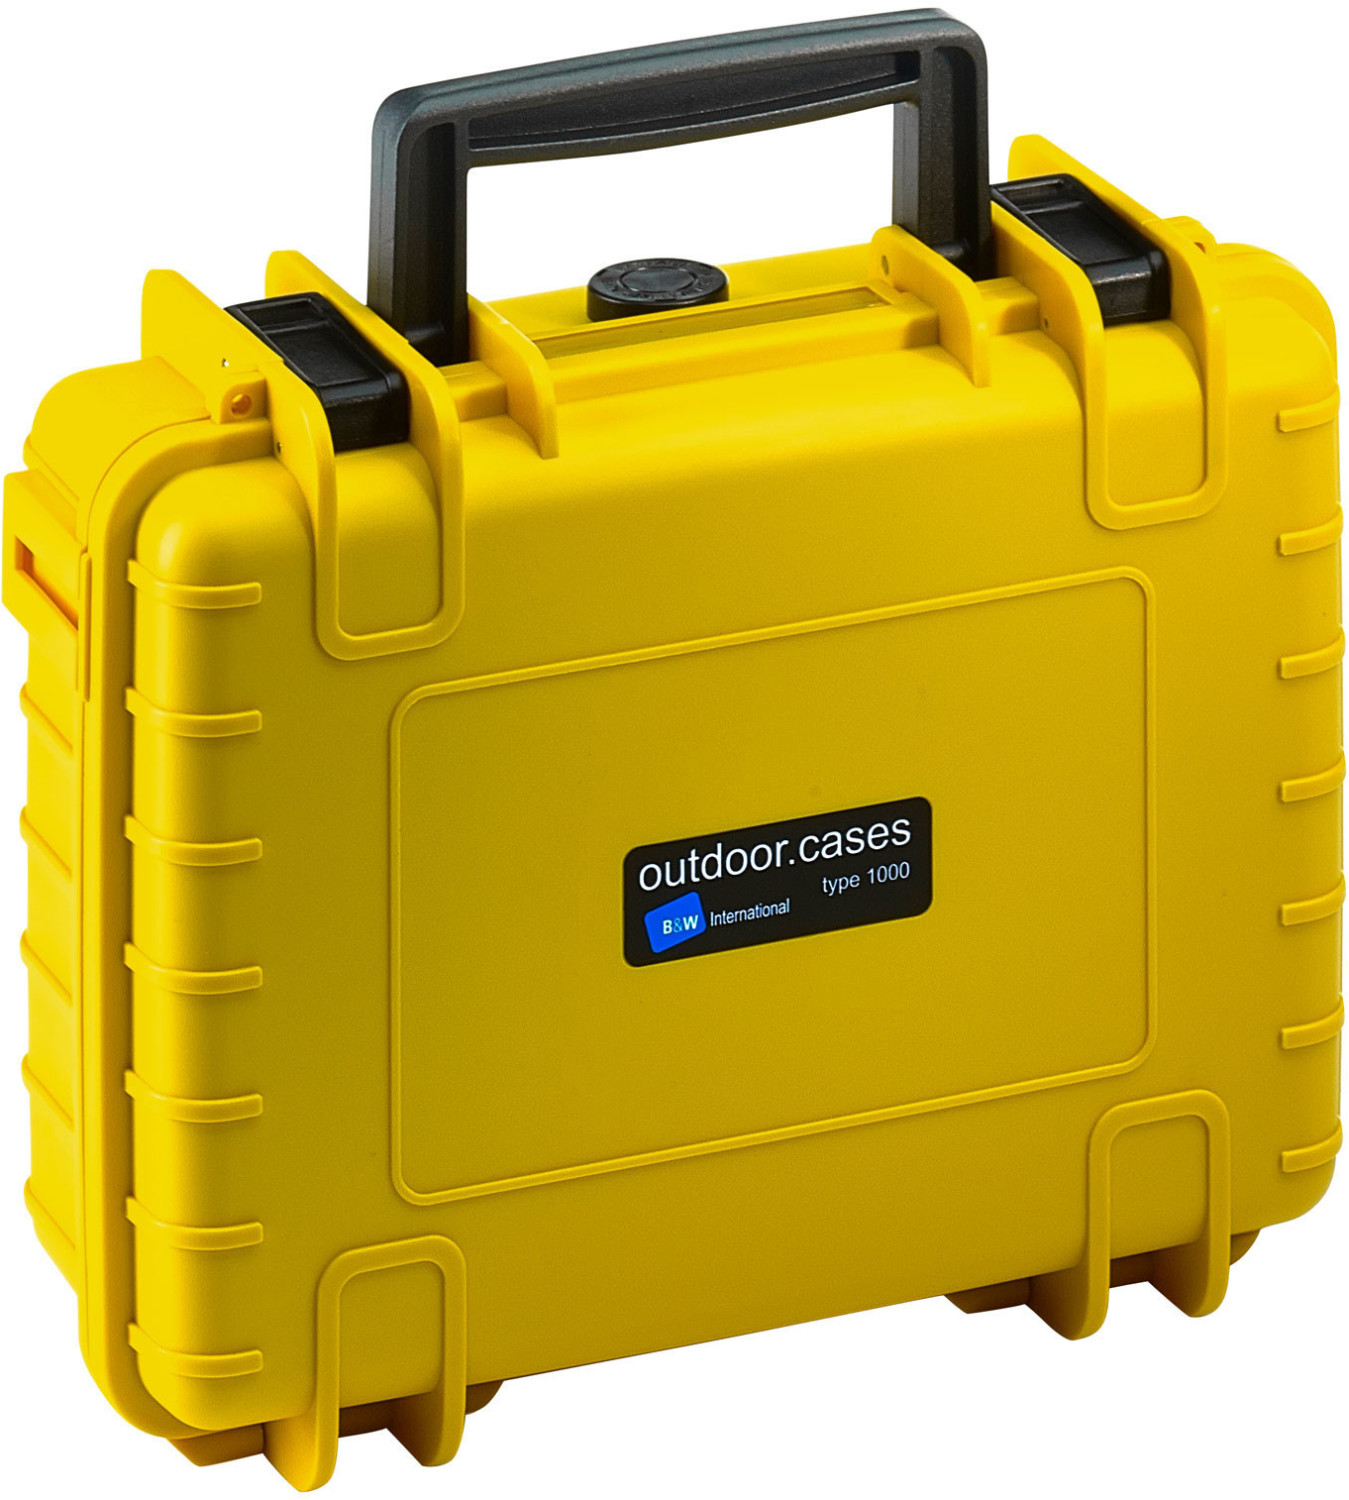 Image of B&W Outdoor Case Type 1000 incl. SI yellow